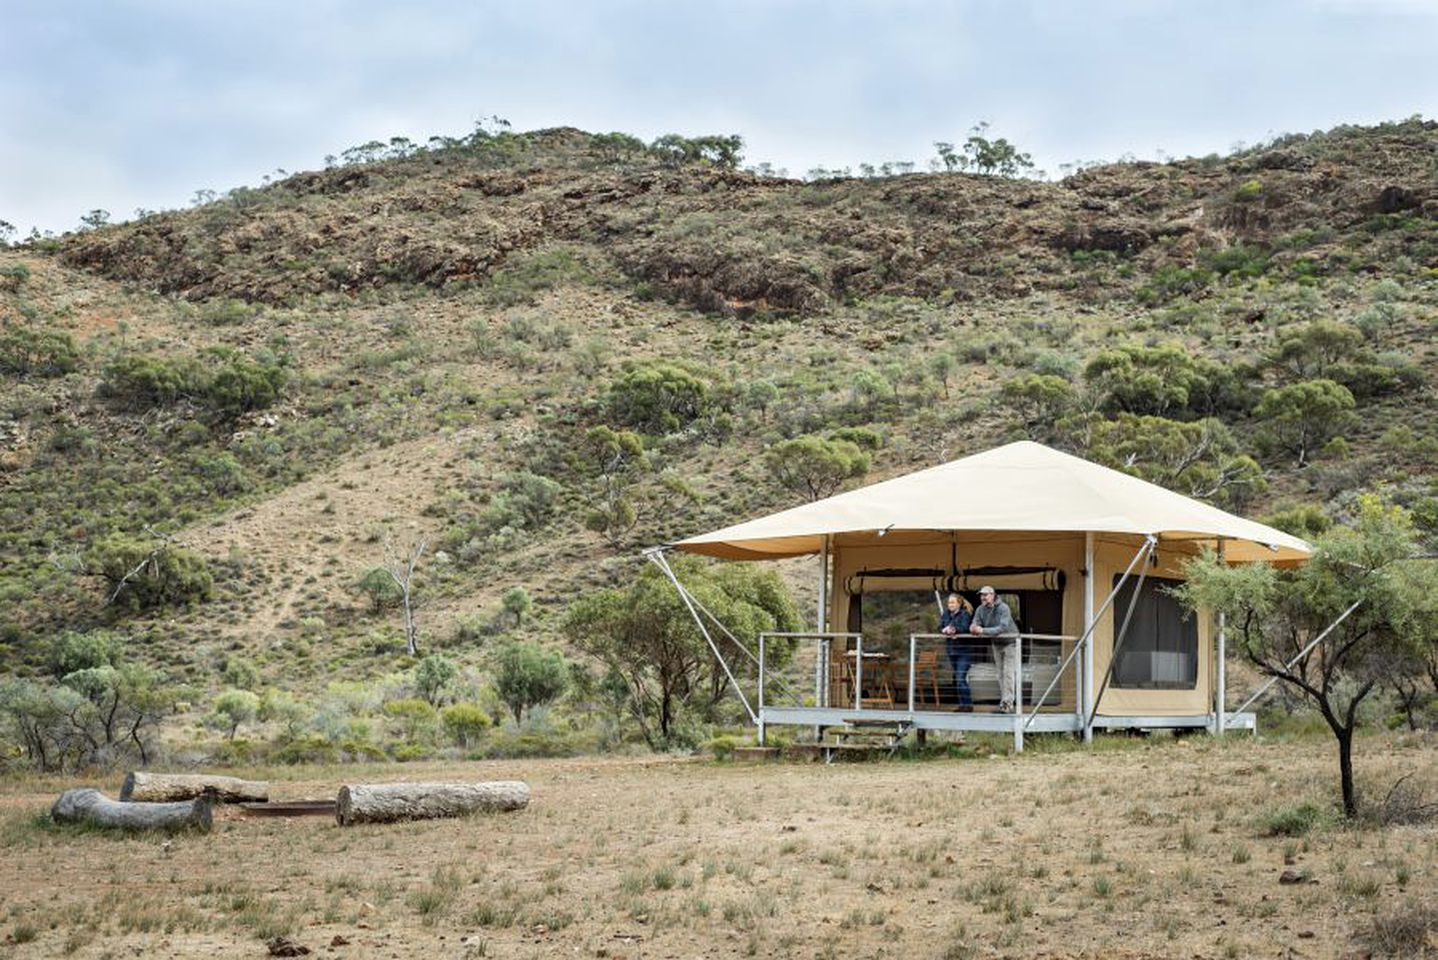 Safari Tents (Hawker, South Australia, Australia)